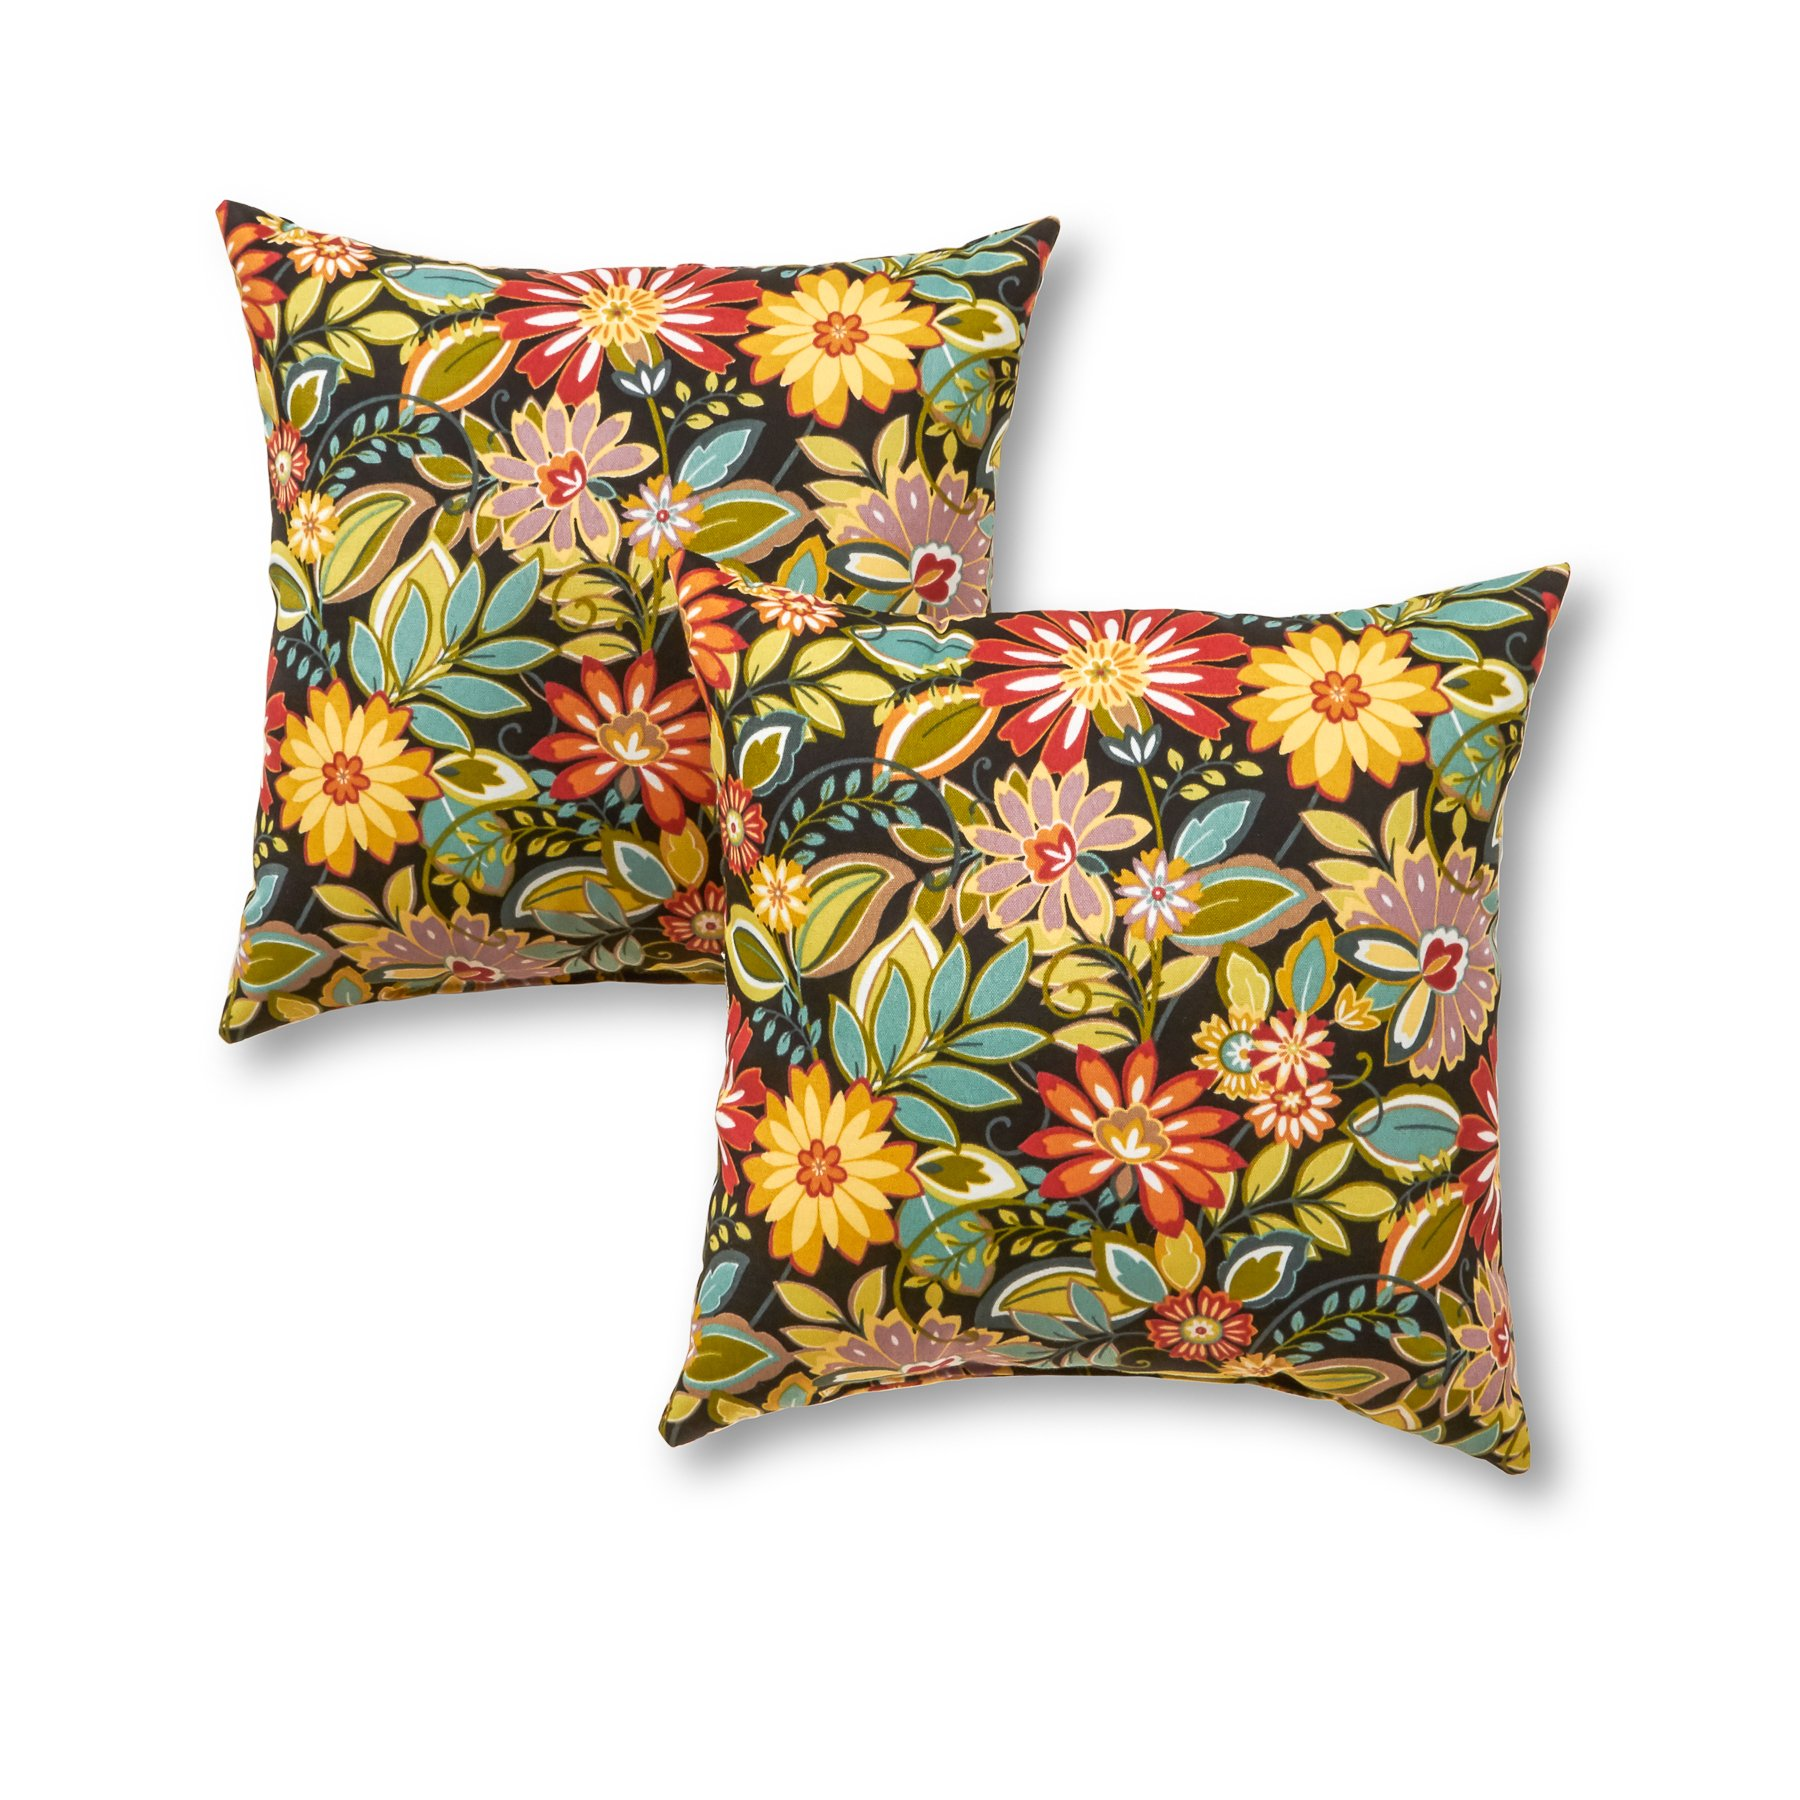 Greendale Home Fashions 17 in. Outdoor Accent Pillow (set of 2), Jungle